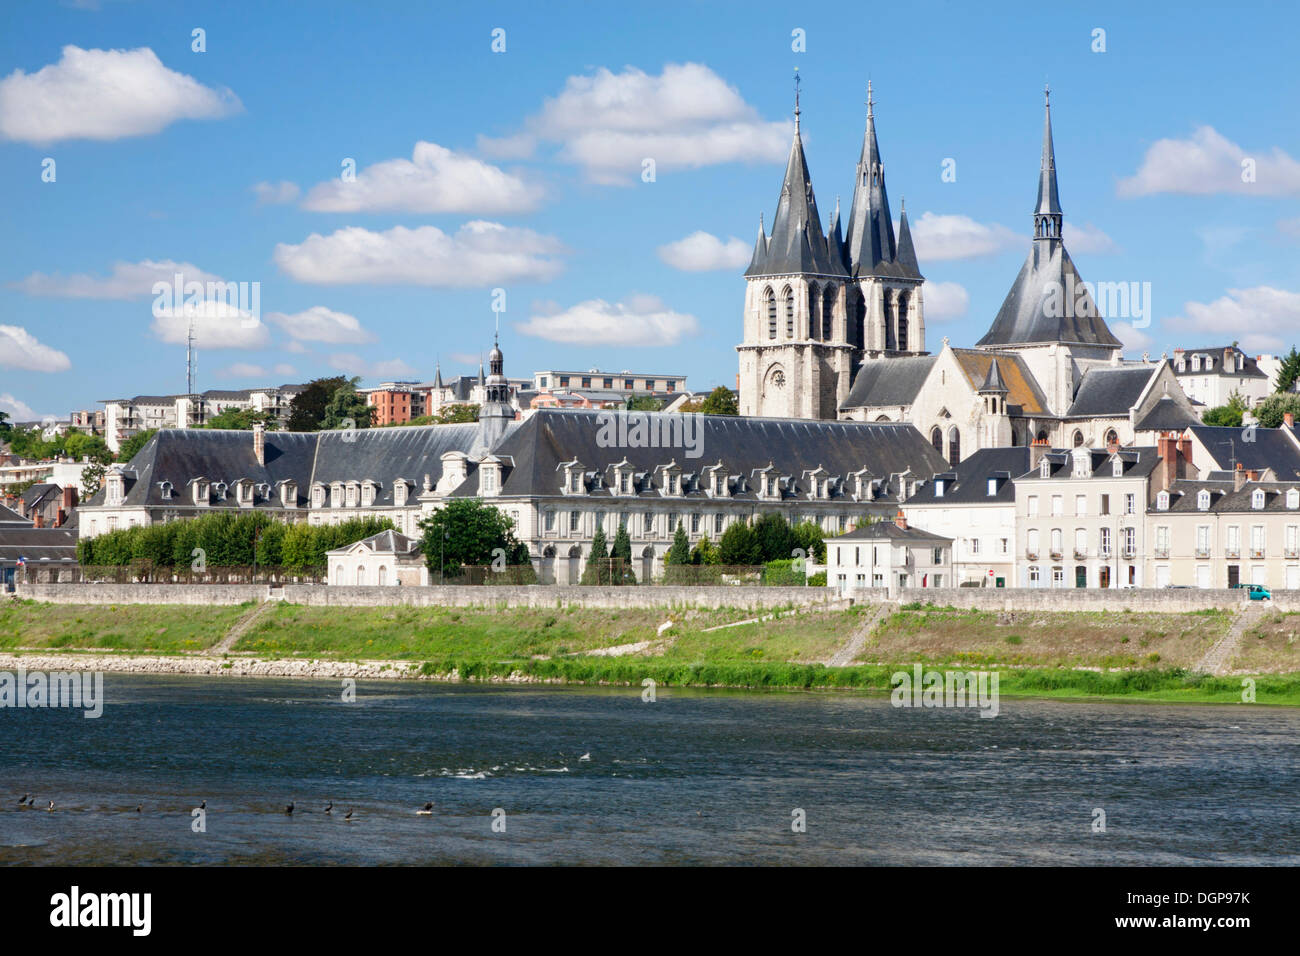 Cityscape of Blois with the Church of Saint Nicolas, department of Loire et Cher, France, Europe - Stock Image